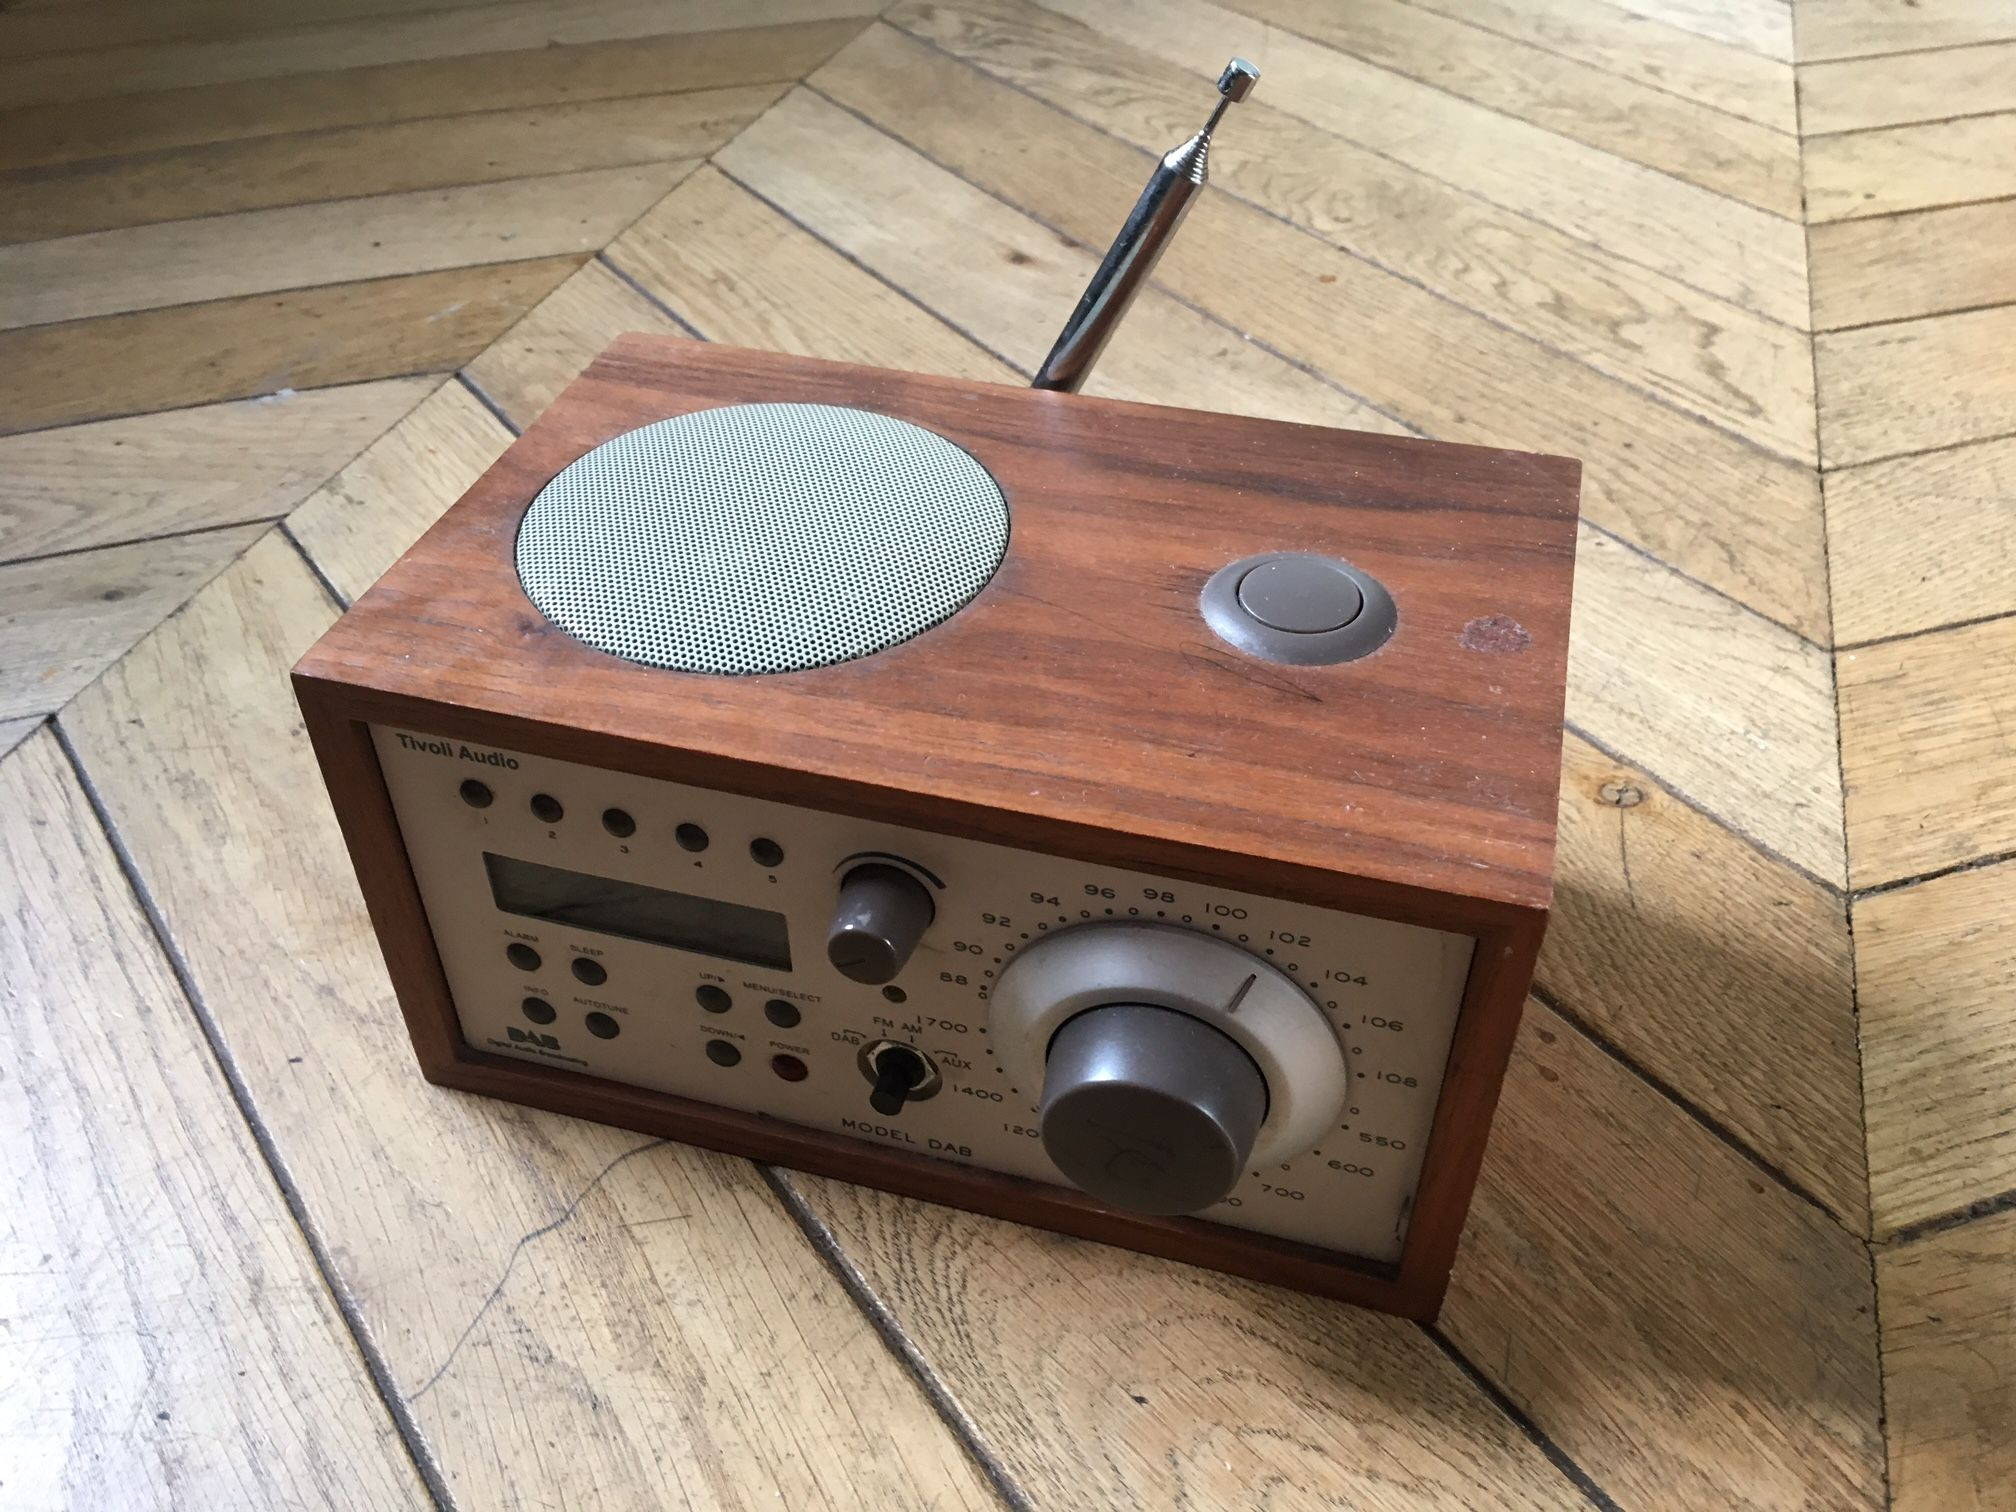 Tivoli Radio Sale Sold Tivoli Audio Dab Digital Radio With Wood Veneer Used 30